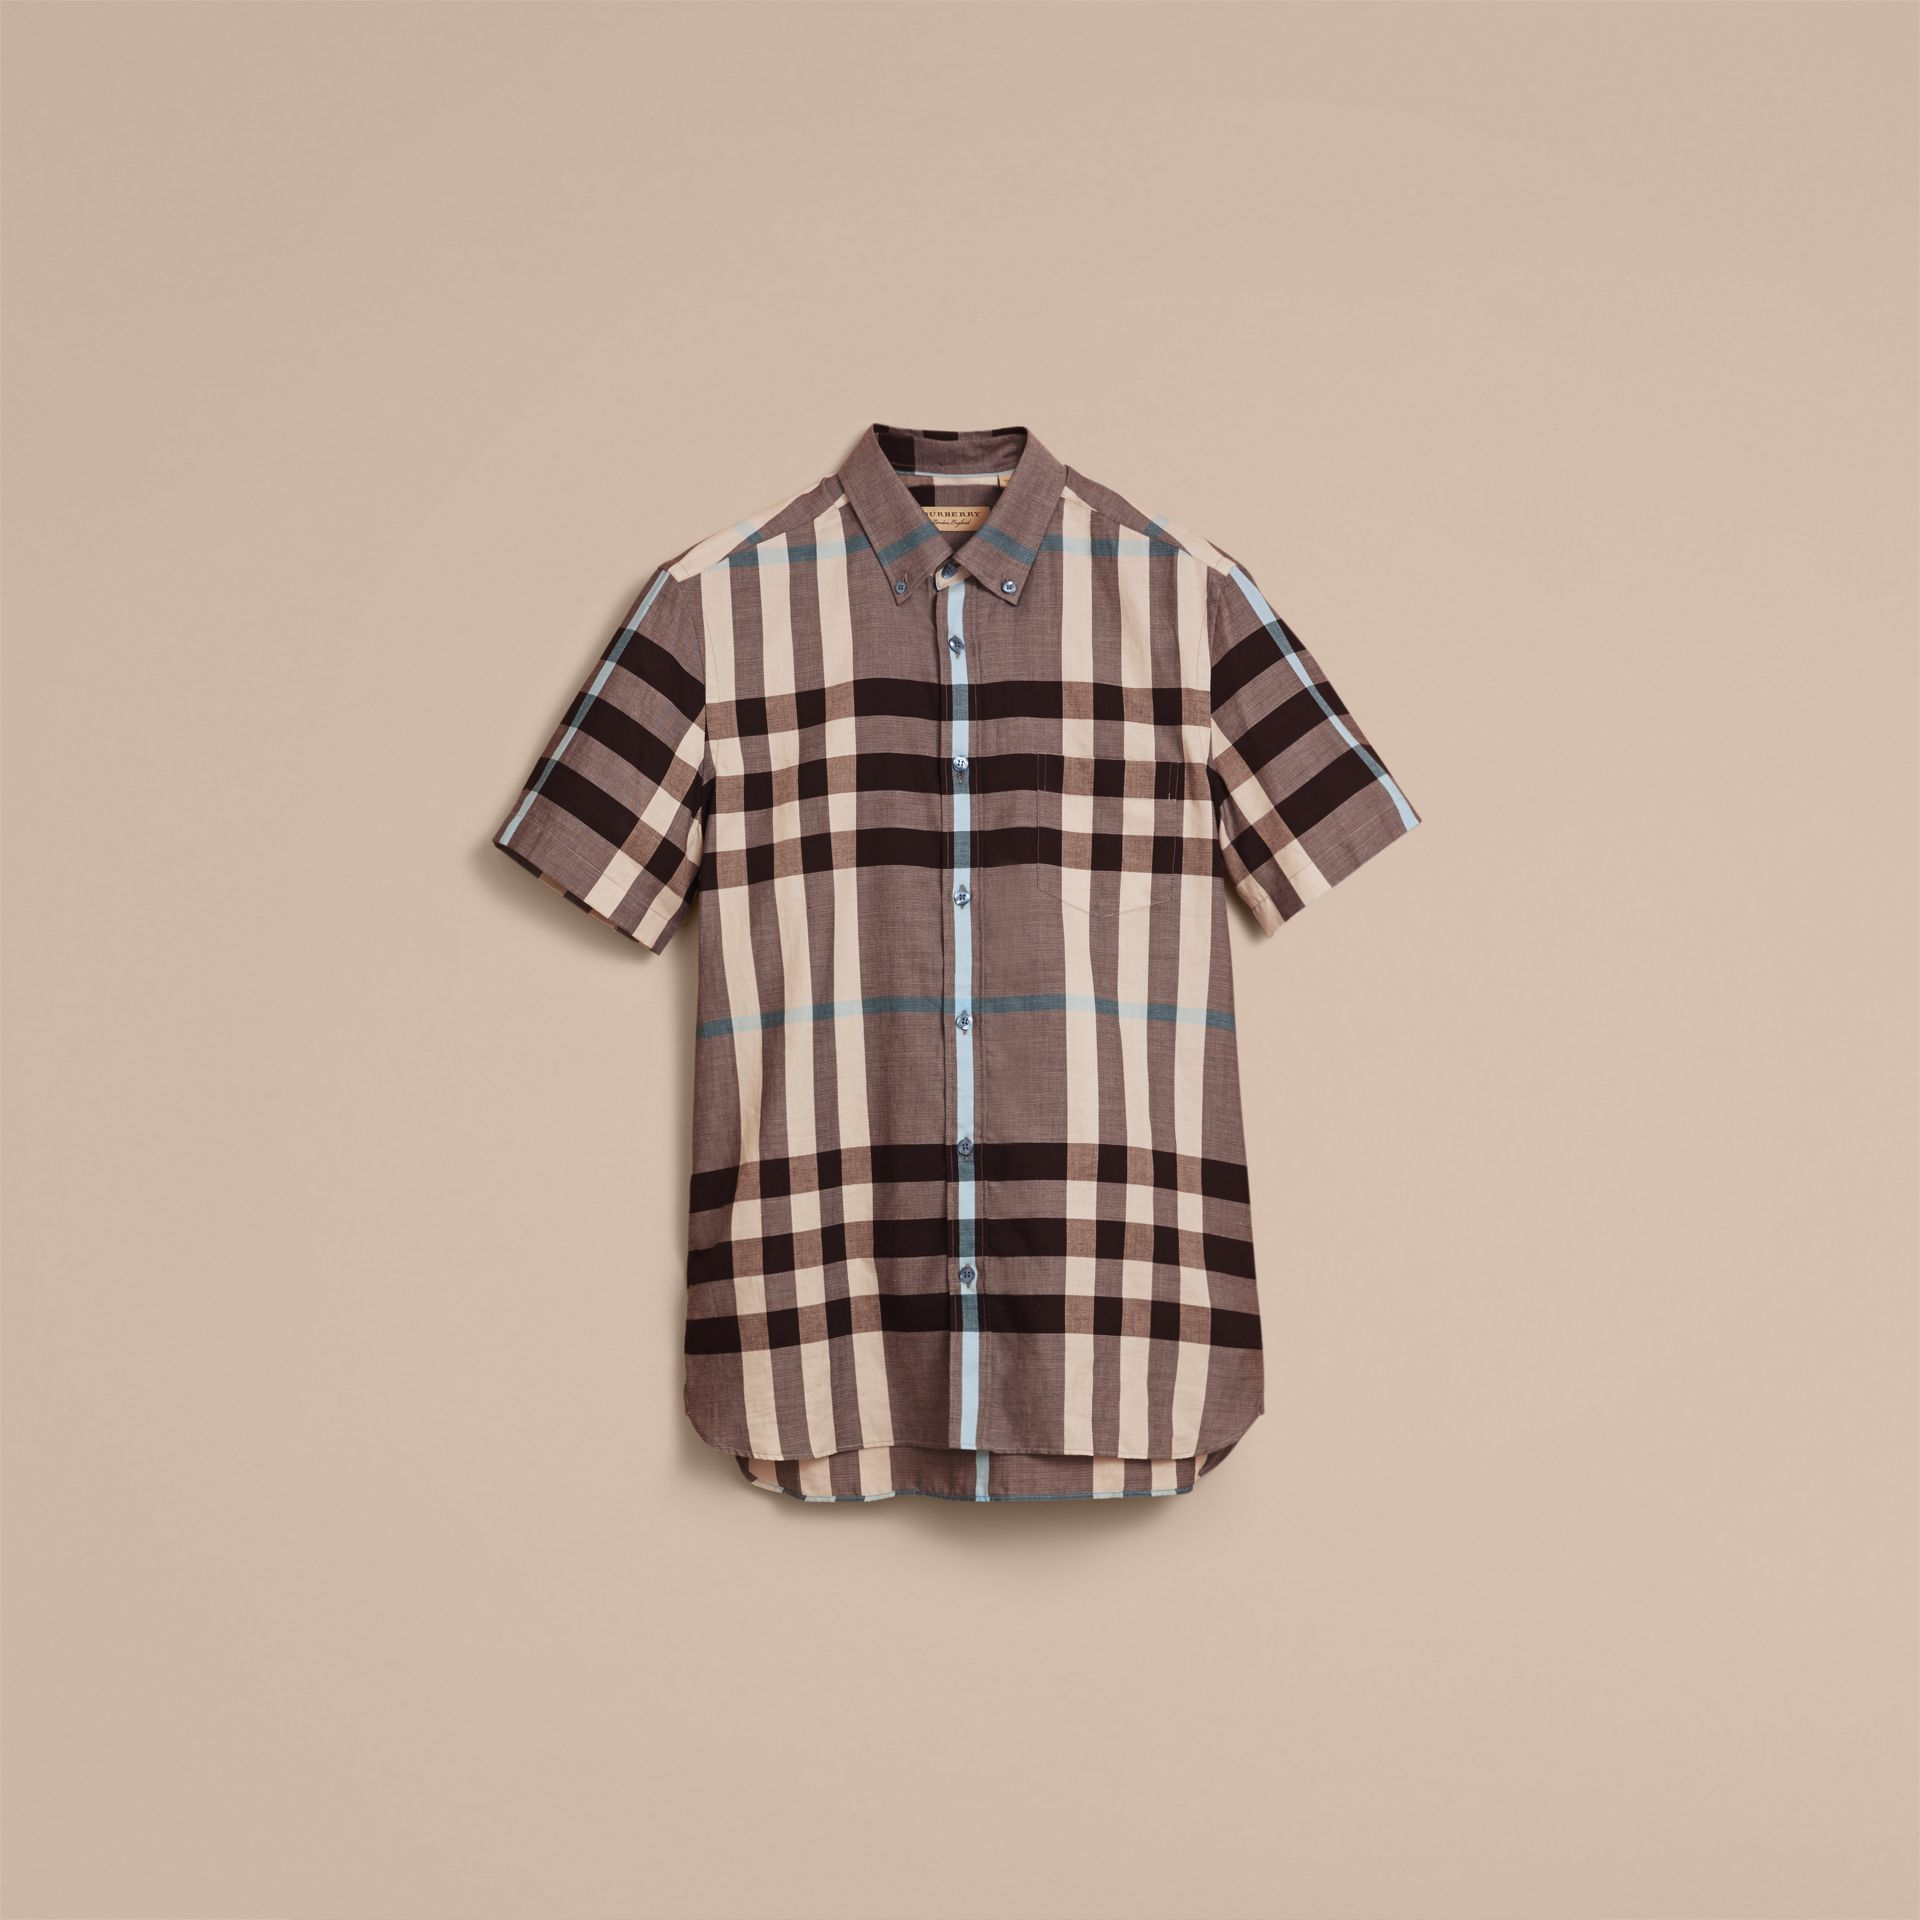 Button-down Collar Short-sleeve Check Cotton Shirt Mist Grey - gallery image 4